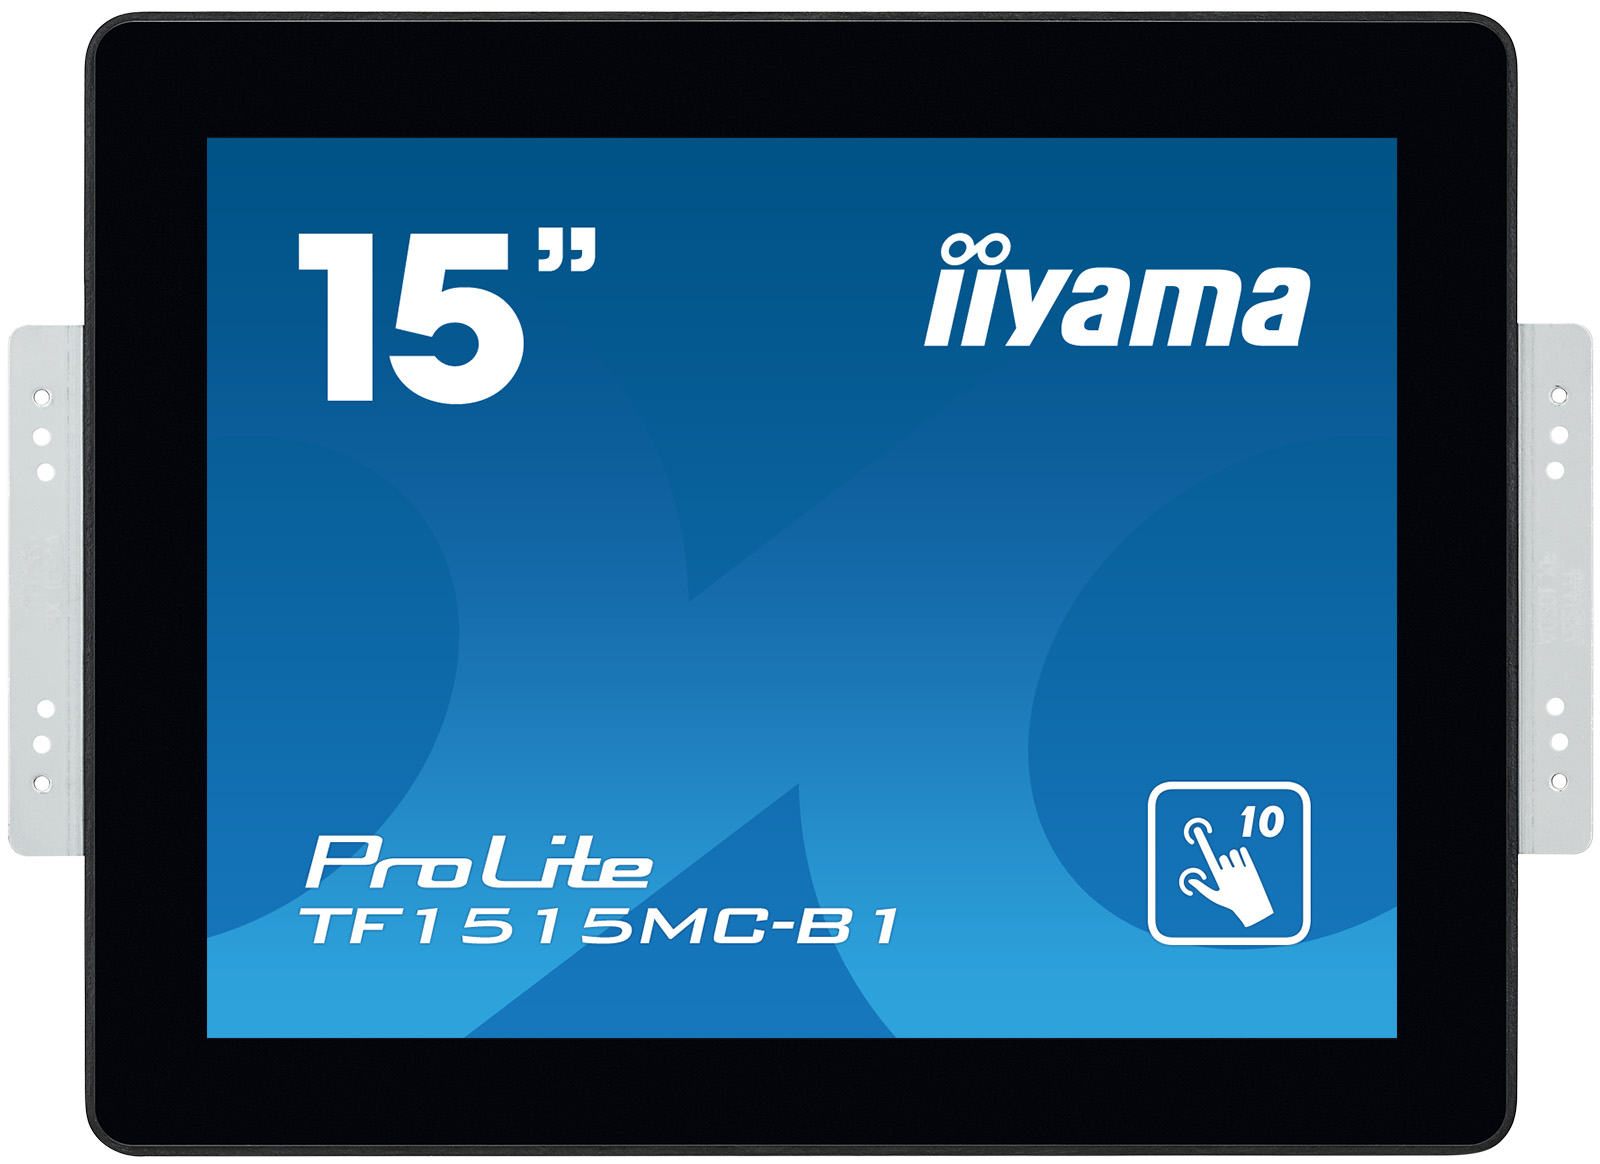 15' iiyama TF1515MC-B1 - TN,1024x768,8ms,300cd/m2, 800:1,4:3,VGA,HDMI,DP,USB